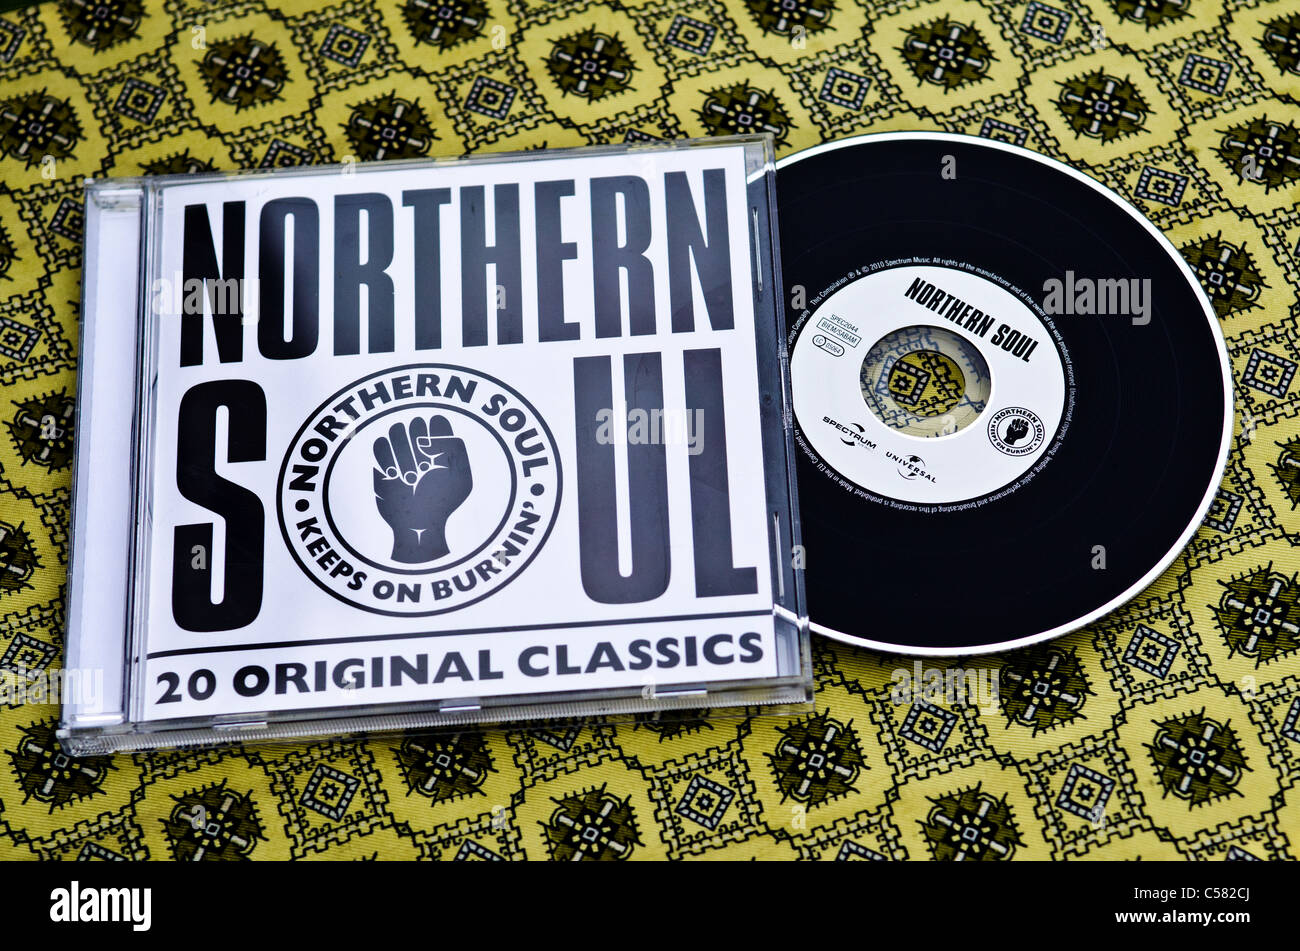 Northern Soul Stock Photos & Northern Soul Stock Images - Alamy